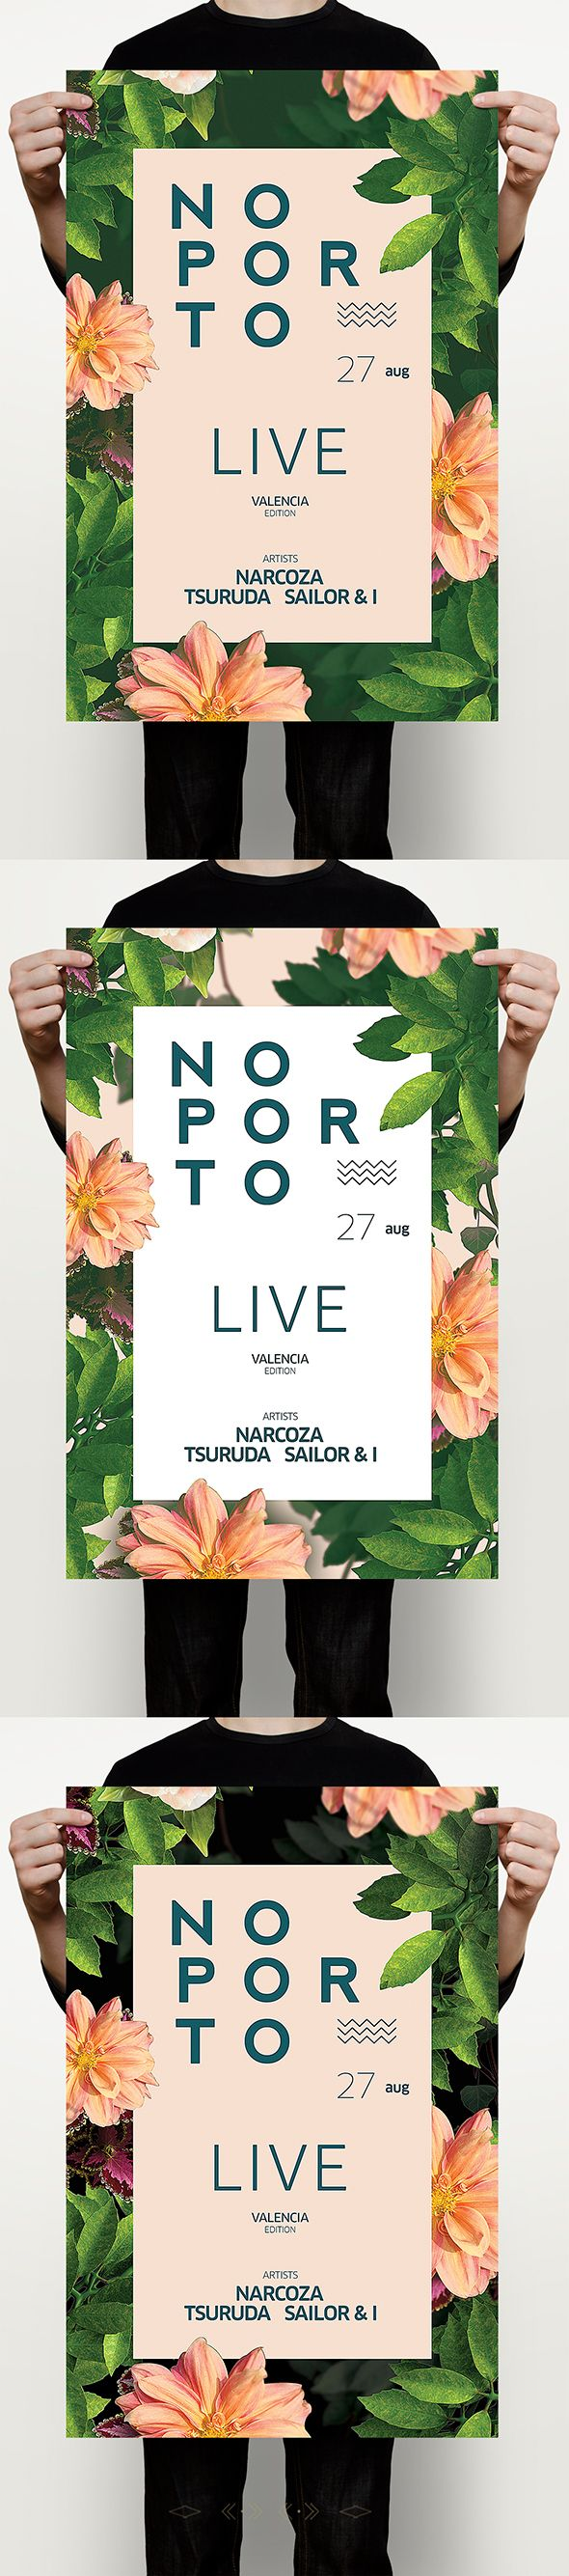 Summer Porto Flyer – This flyer poster template can be used for a summer party, outdoor bar, fashion event, email template, summer sale flyer,flower workshop, beach party, bar and dj event, tropical island theme party, or just for regular summer festivals…